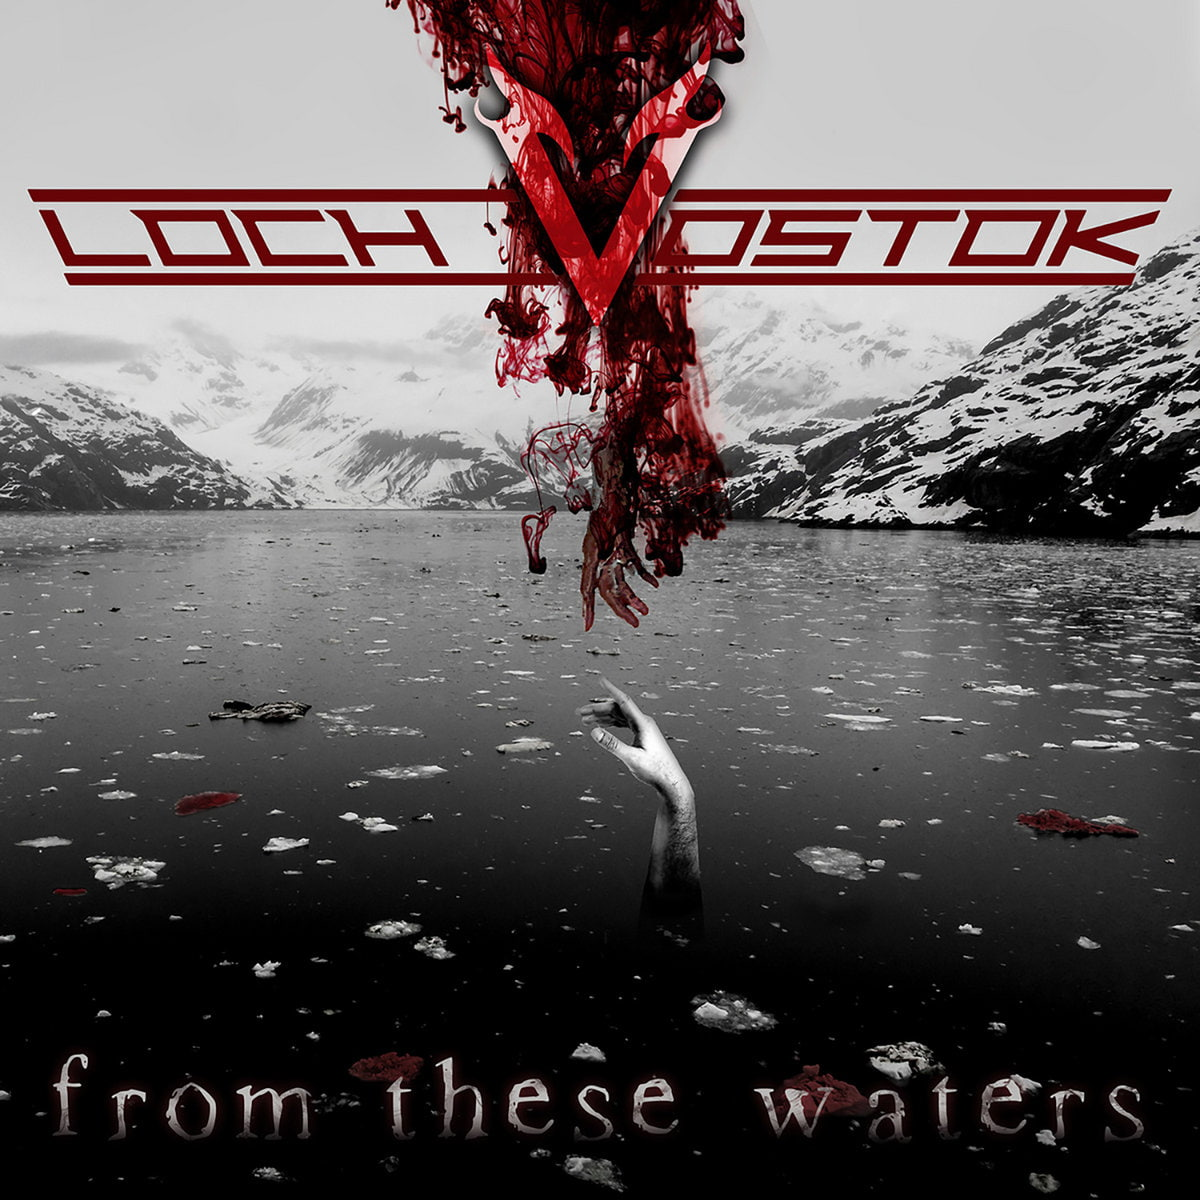 Loch Vostok - From These Waters